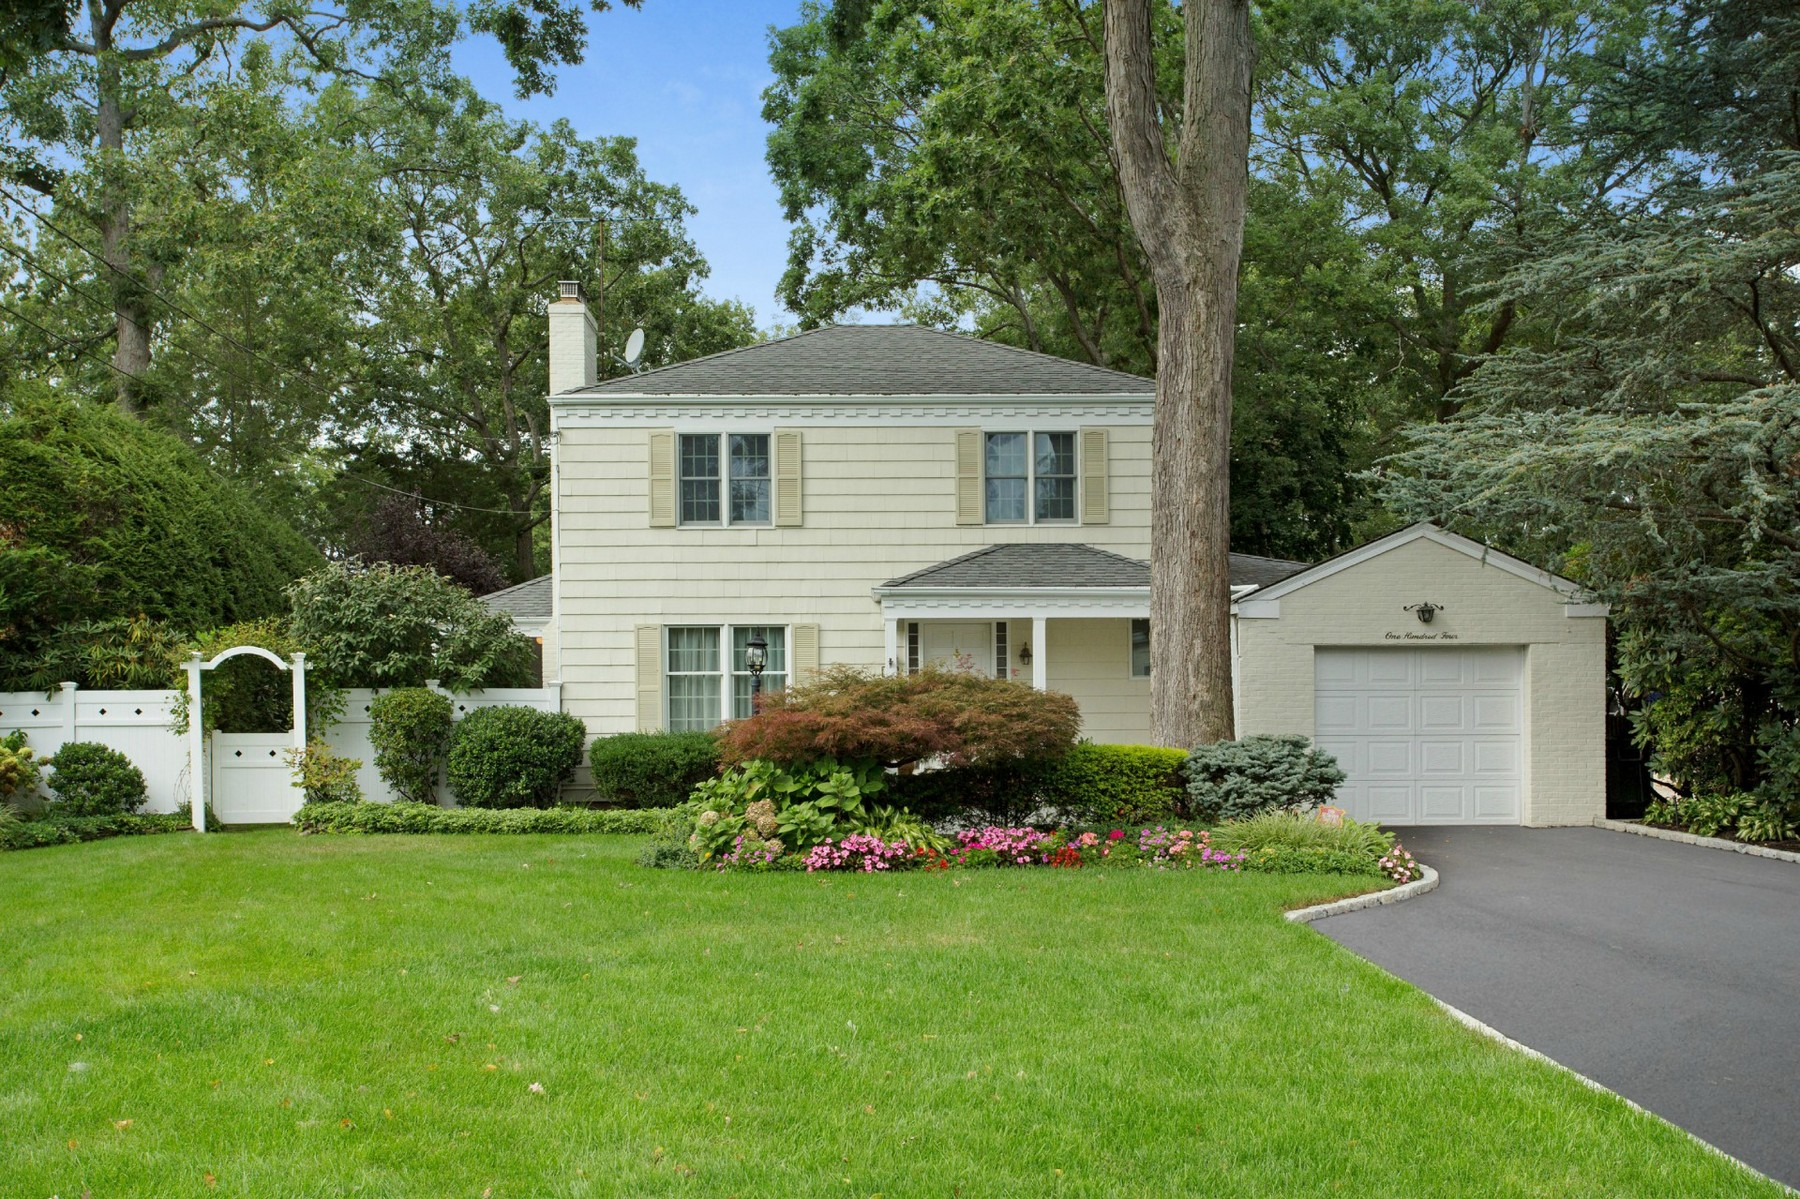 Single Family Home for Sale at Colonial 104 Elliman Pl Syosset, New York, 11791 United States